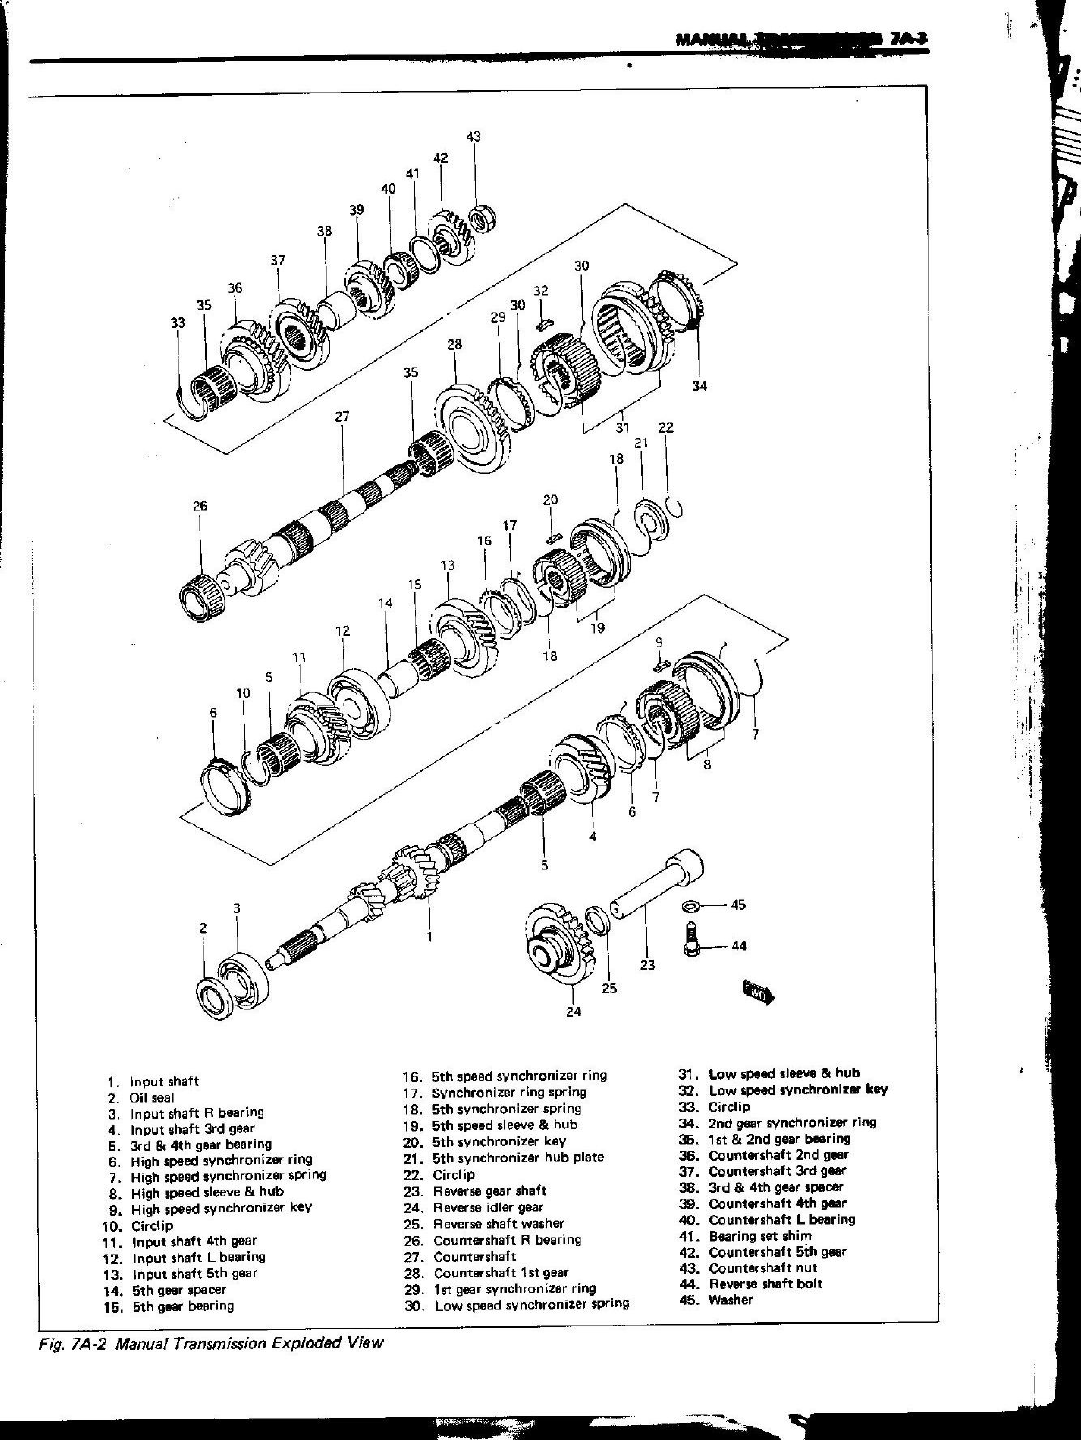 Suzuki Swift Misc Documents Gearbox Repair Guidance PDF